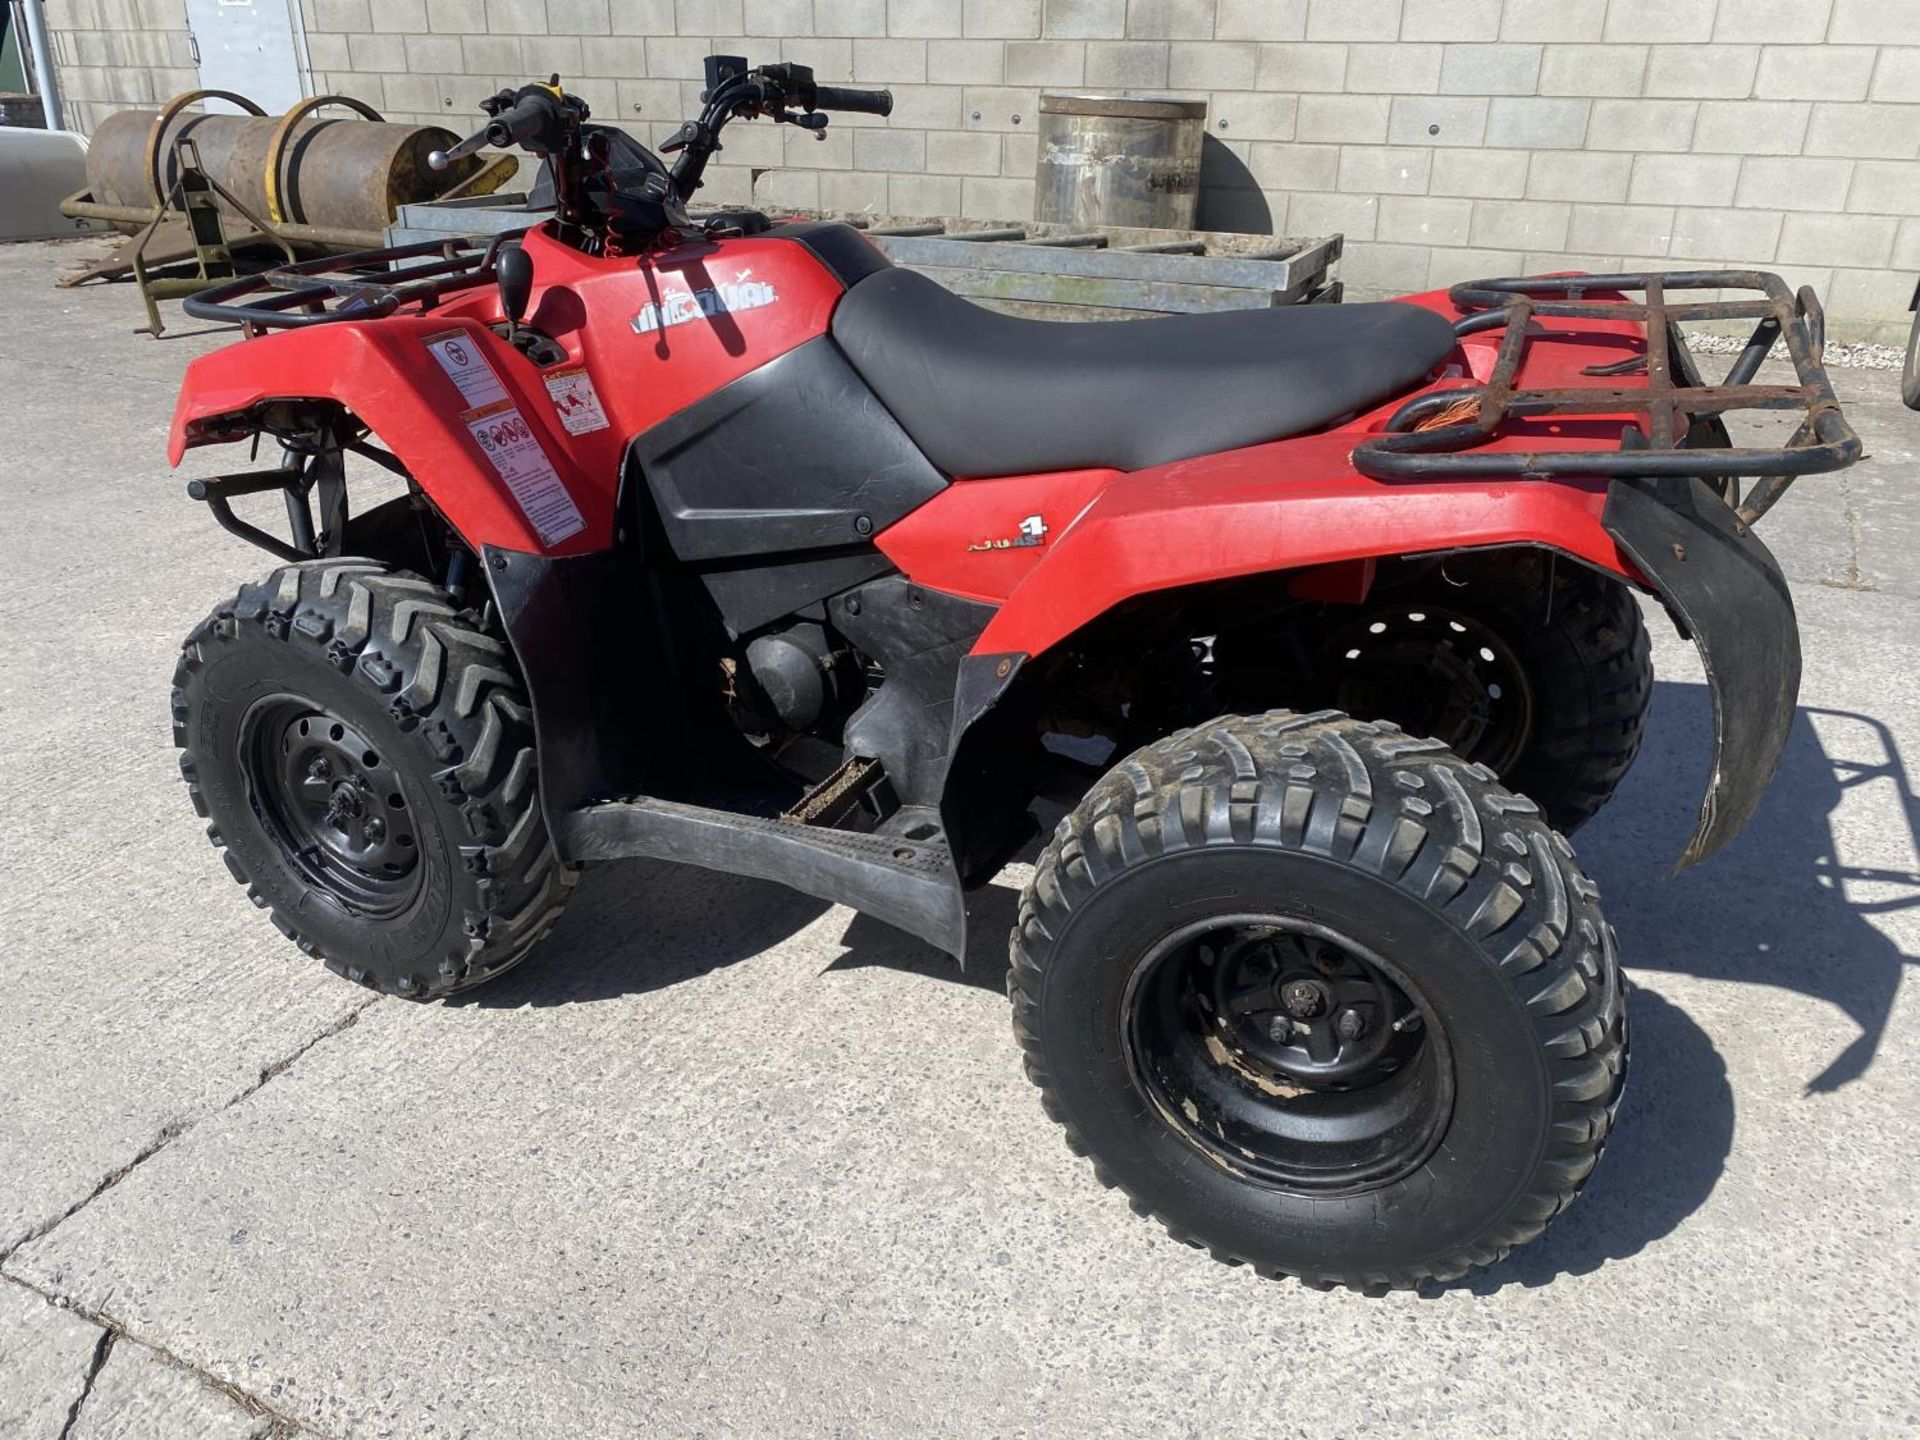 A 2013 SUZUKI KING QUAD, 400 CC AUTOMATIC - SEE VIDEO OF VEHICLE STARTING AND RUNNING - NO VAT